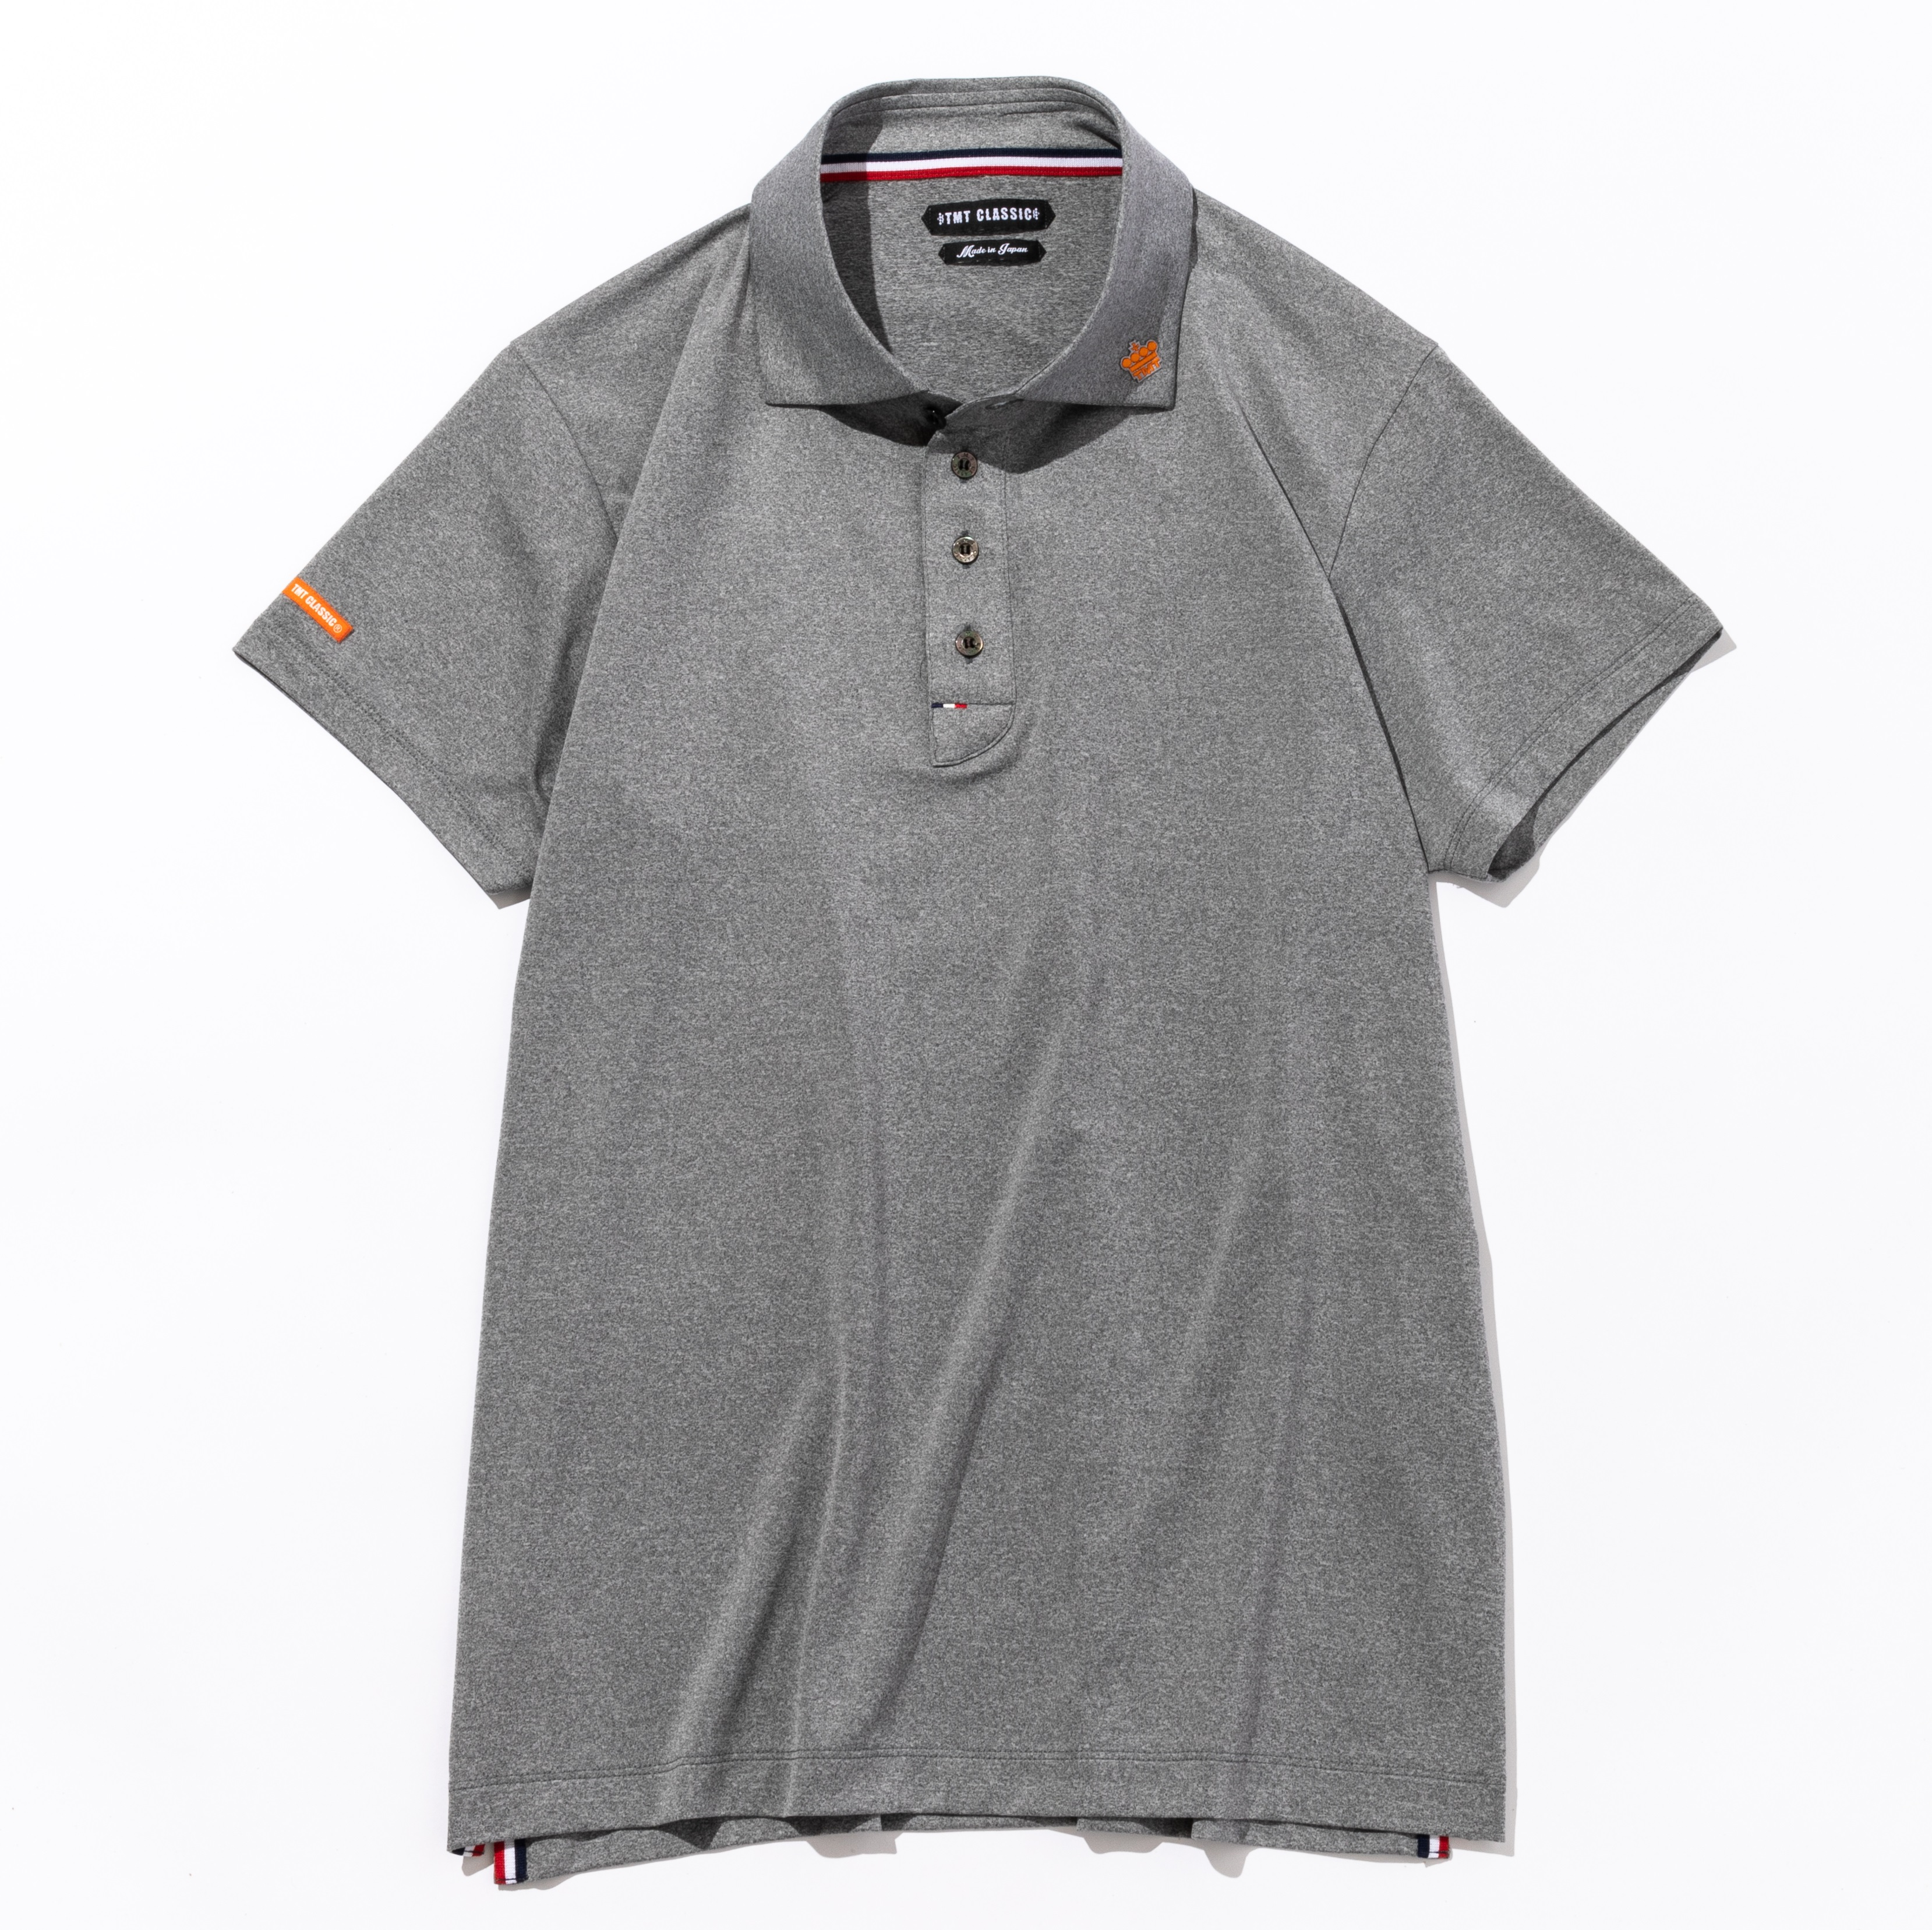 TMT Classic FUNCTIONAL STRETCH JERSEY POLO SHIRT グレー